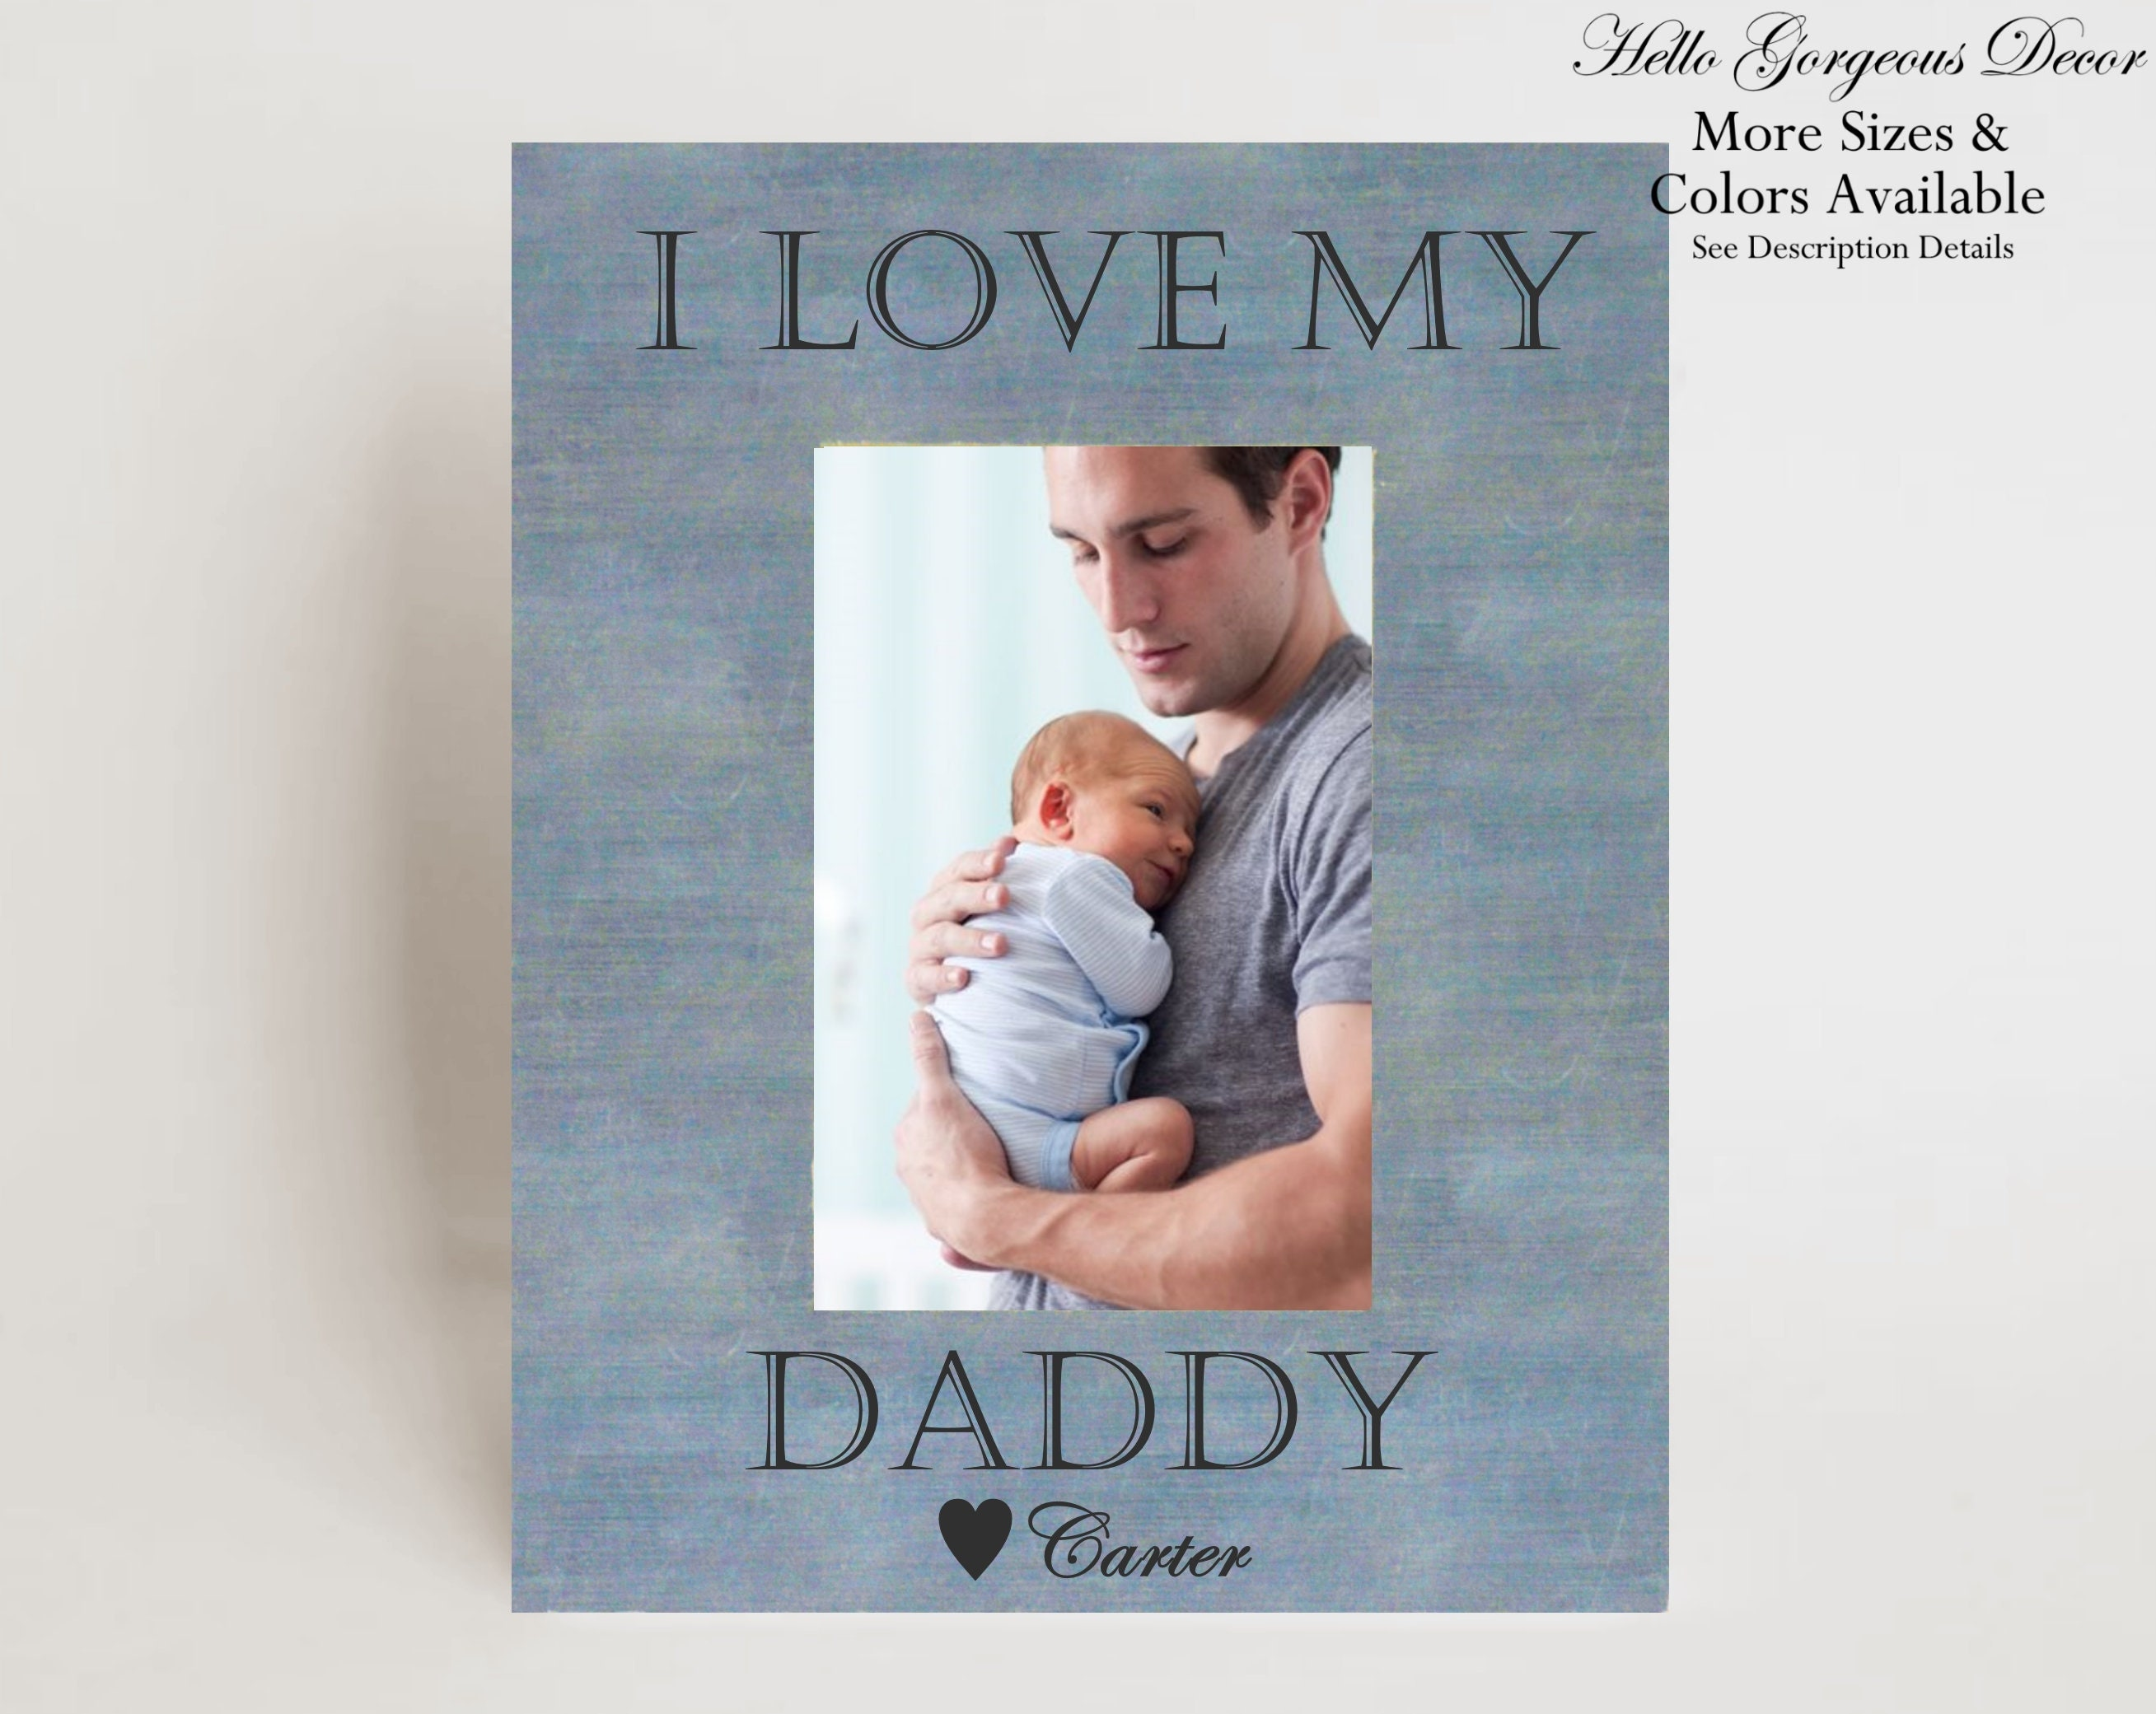 Father\'s Day Gift for Dad from Son Daughter - PERSONALIZED PICTURE ...